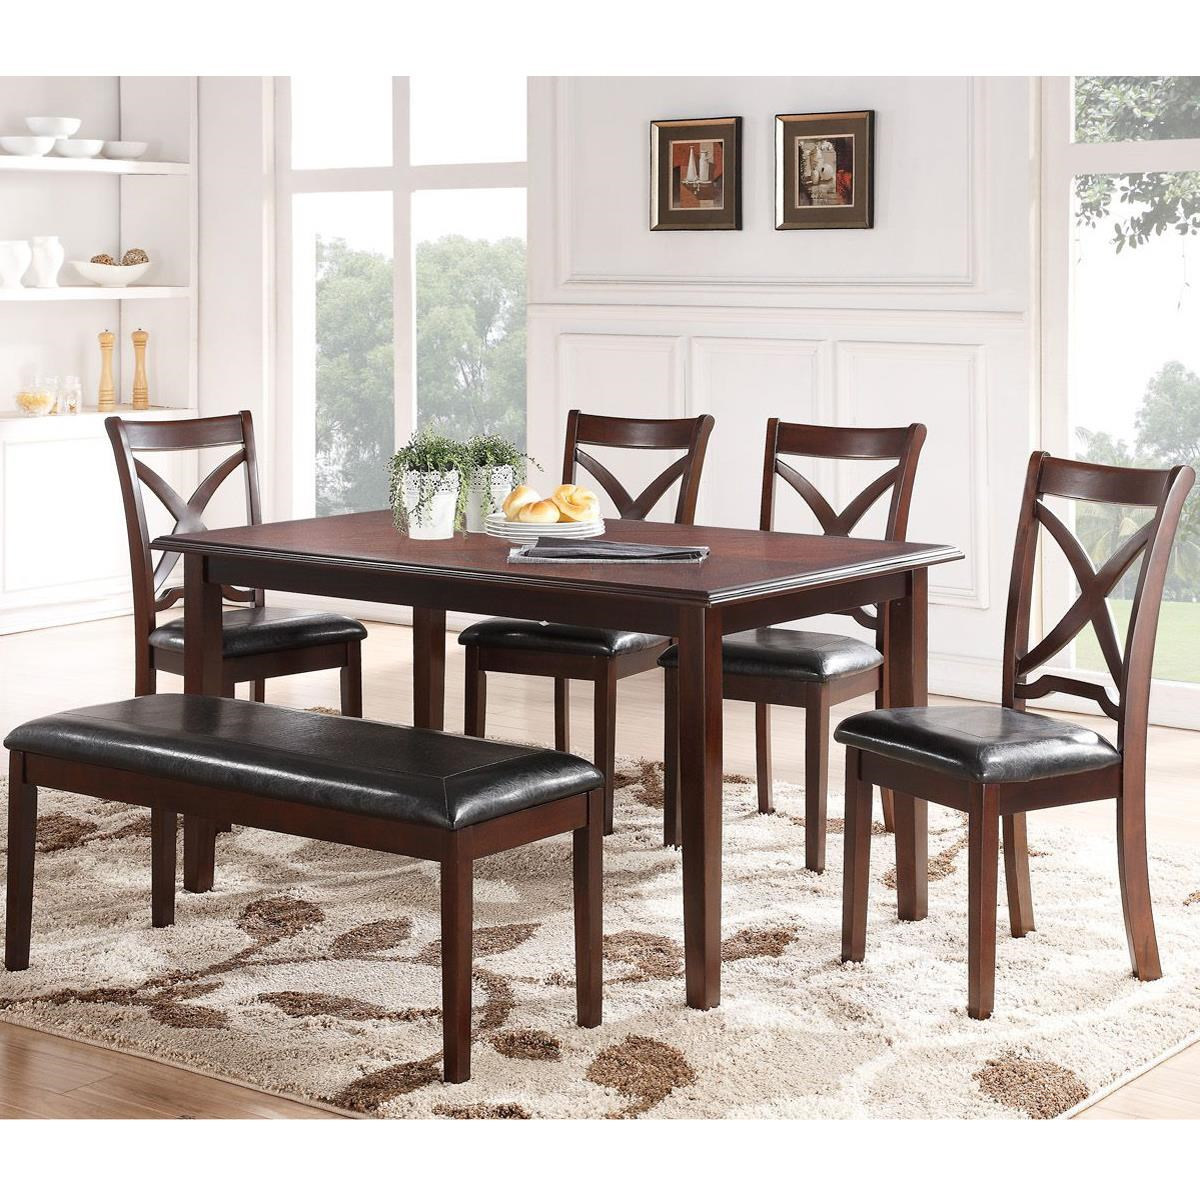 Dining Room Chair Sets Milo Dining Table And Chair Set With A Bench And Tapered Feet By New Classic At Wilcox Furniture